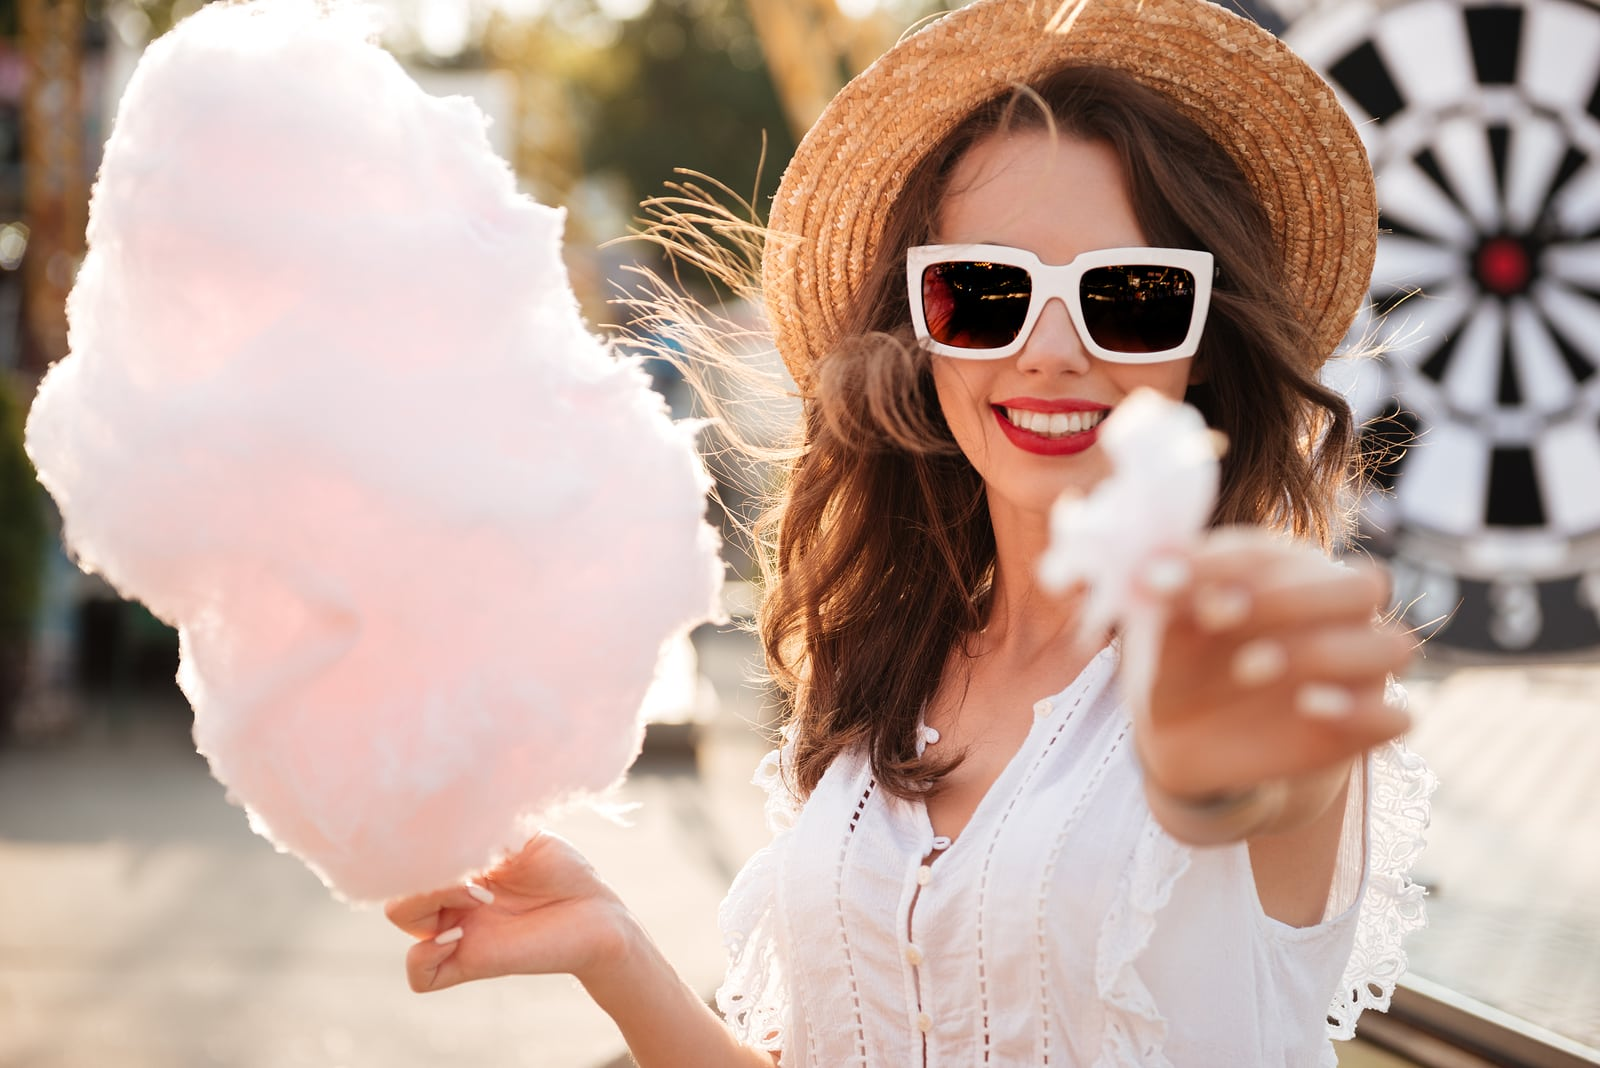 Close up portrait of a pretty young girl in sunglasses eating cotton candy at amusement park